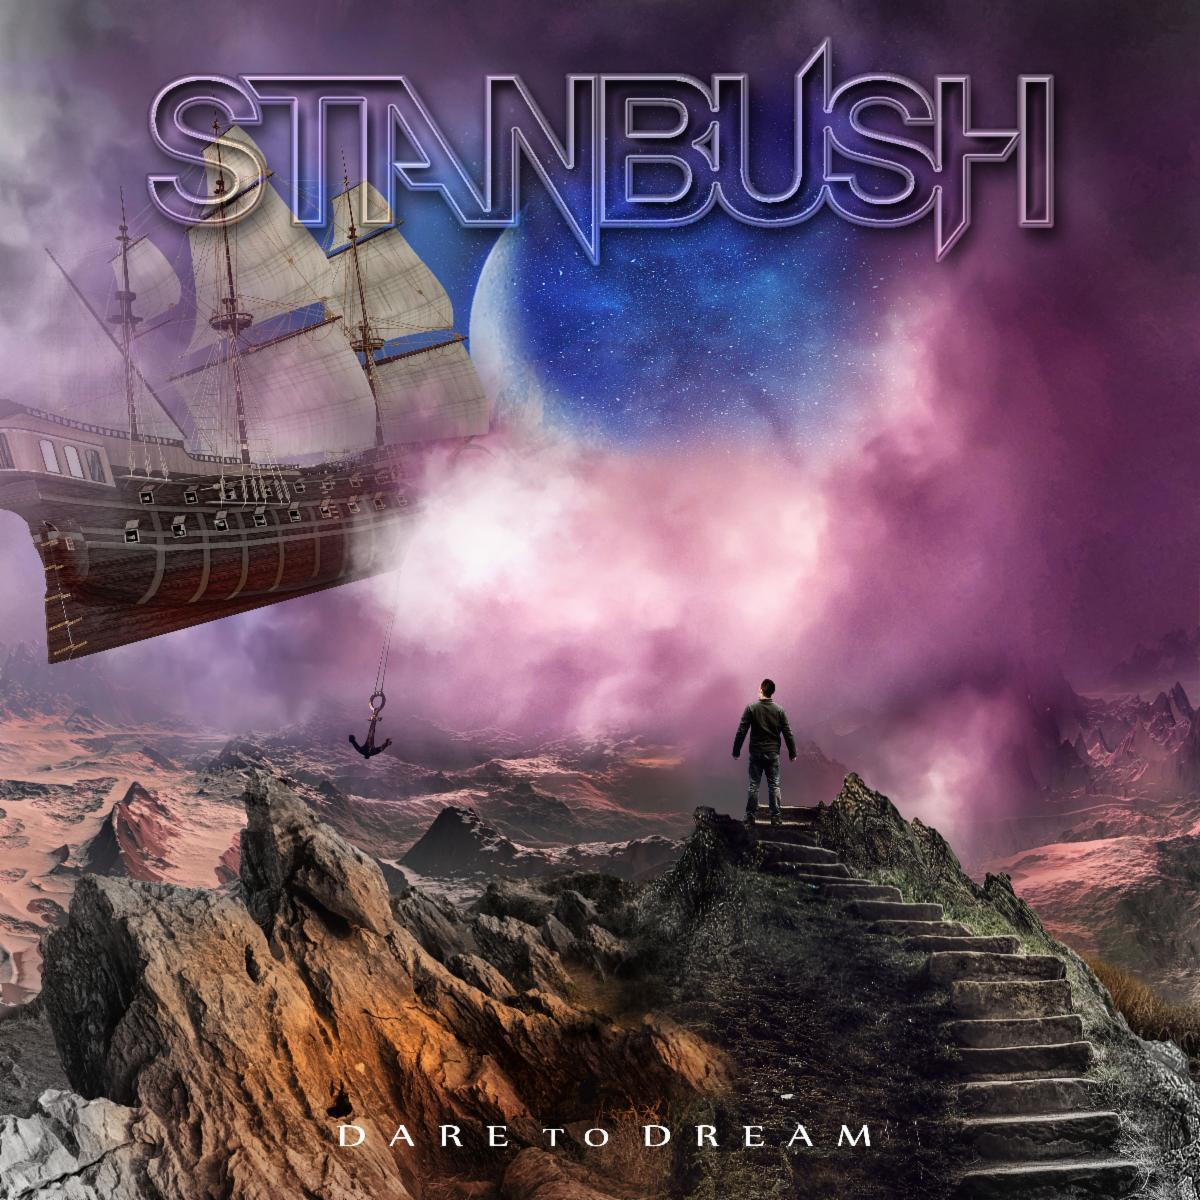 Stan Bush Dare to Dream Album